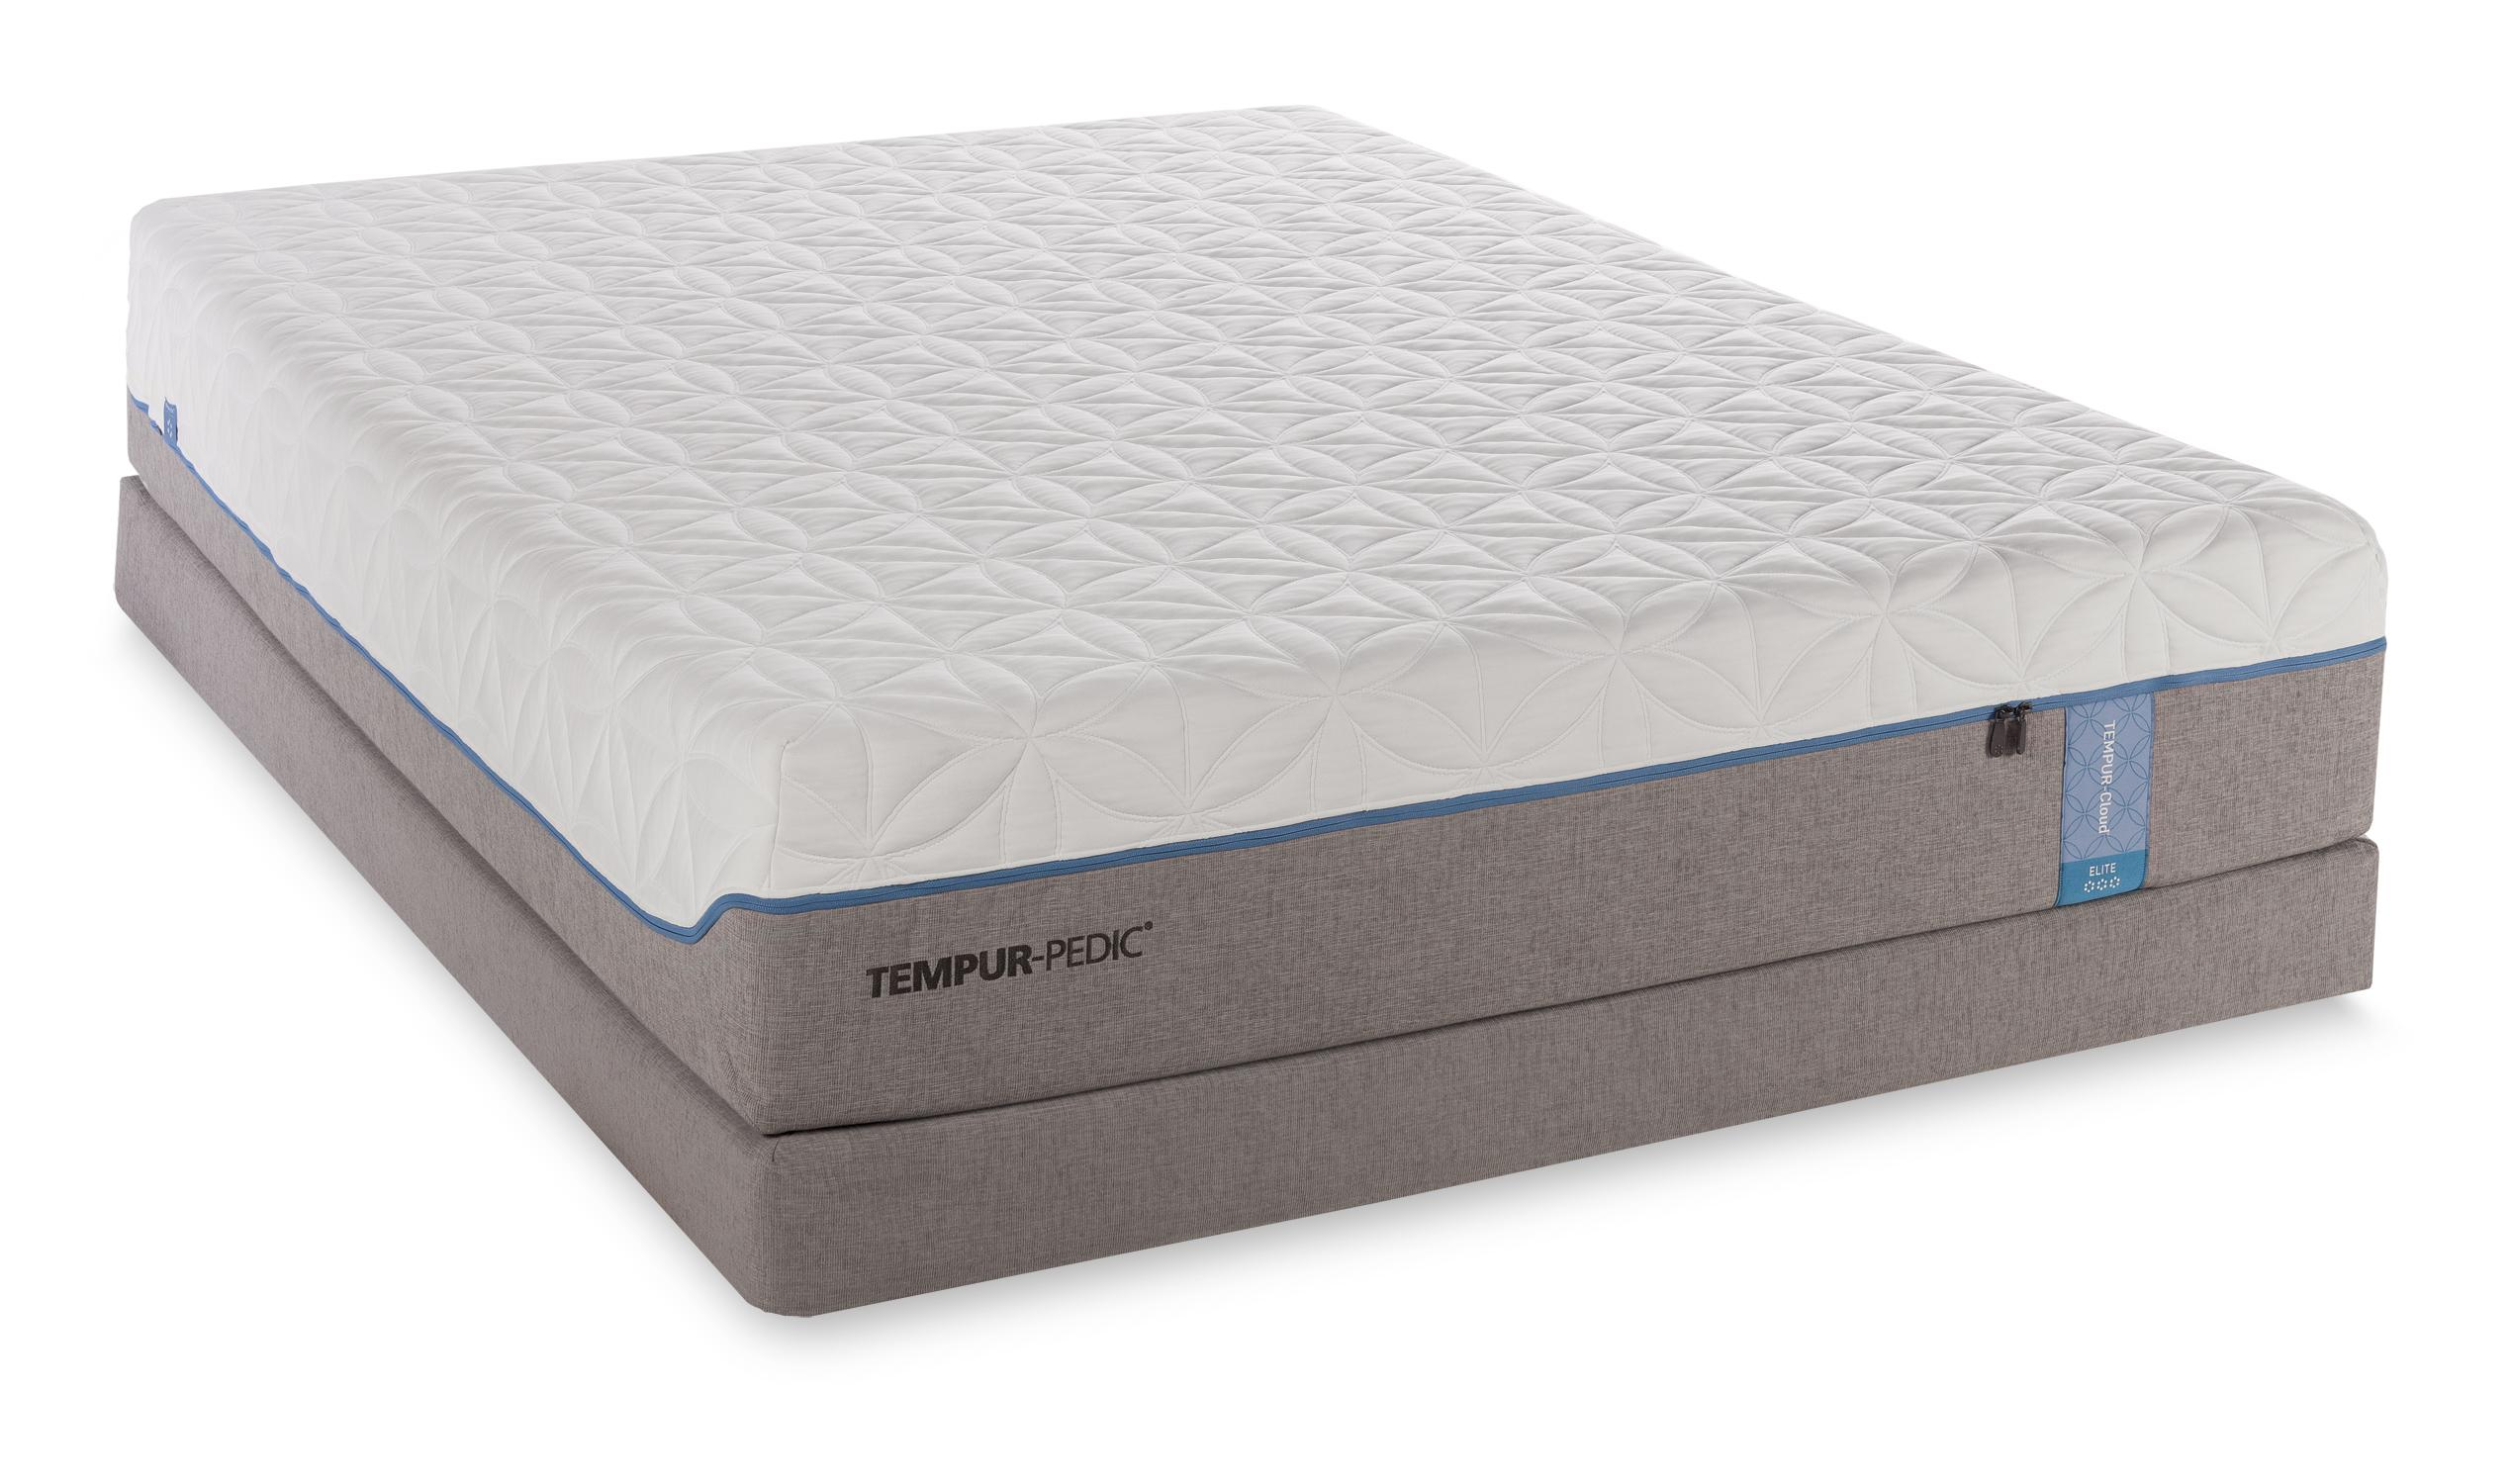 Tempur-Pedic® TEMPUR-Cloud Elite Twin XL Extra-Soft Mattress Set - Item Number: 10236120+20510120